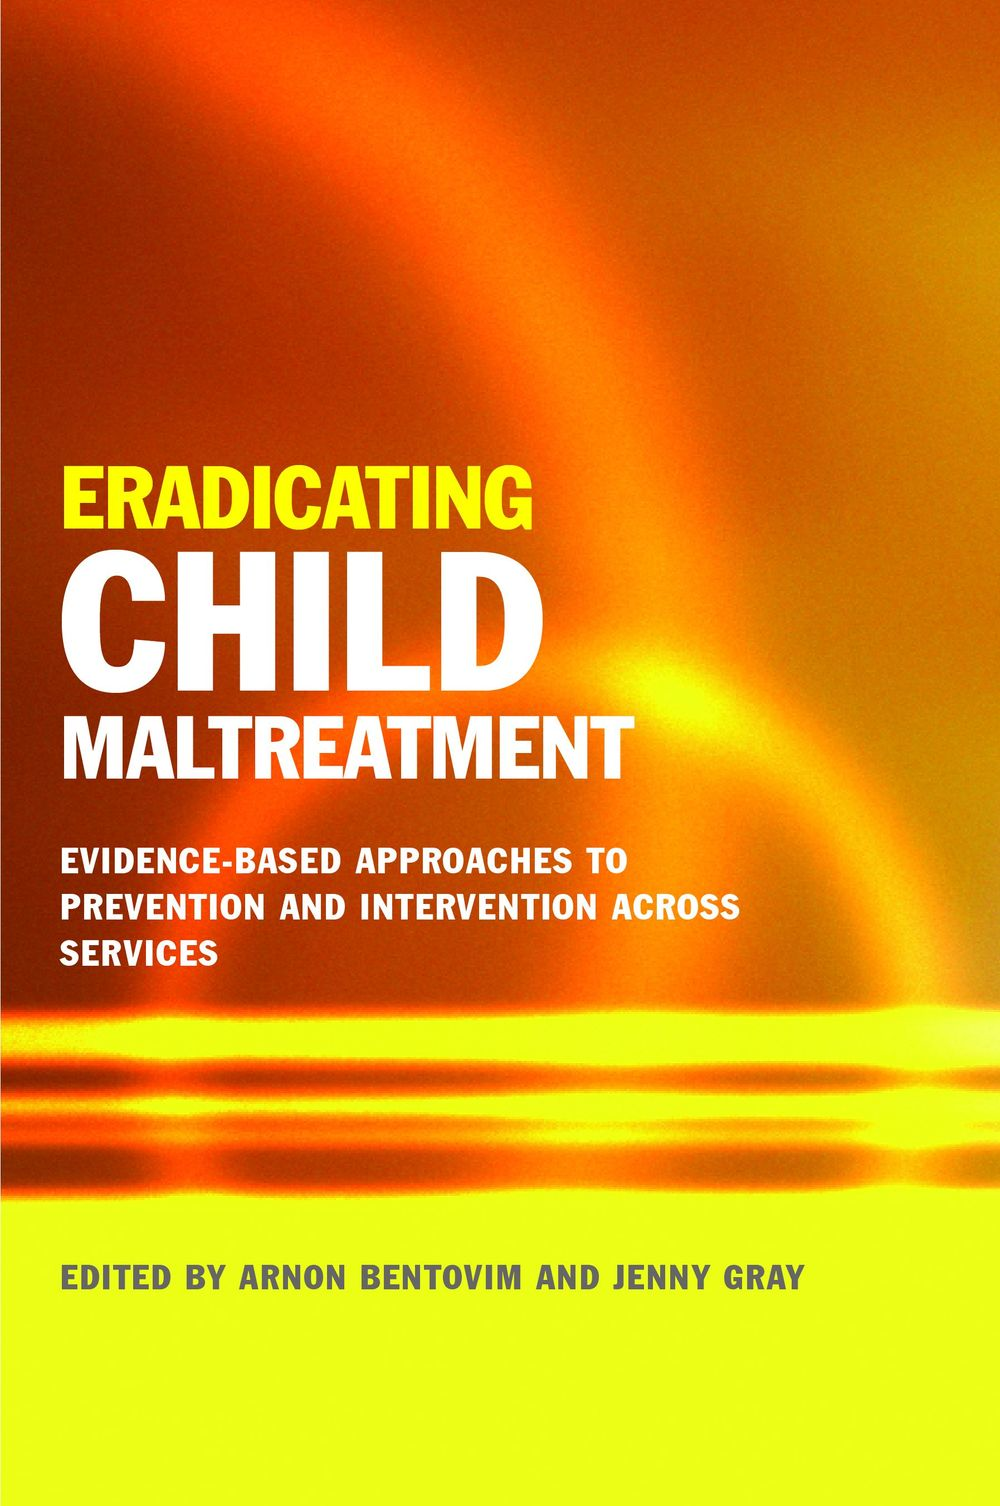 Eradicating Child Maltreatment Evidence-Based Approaches to Prevention and Intervention Across Services